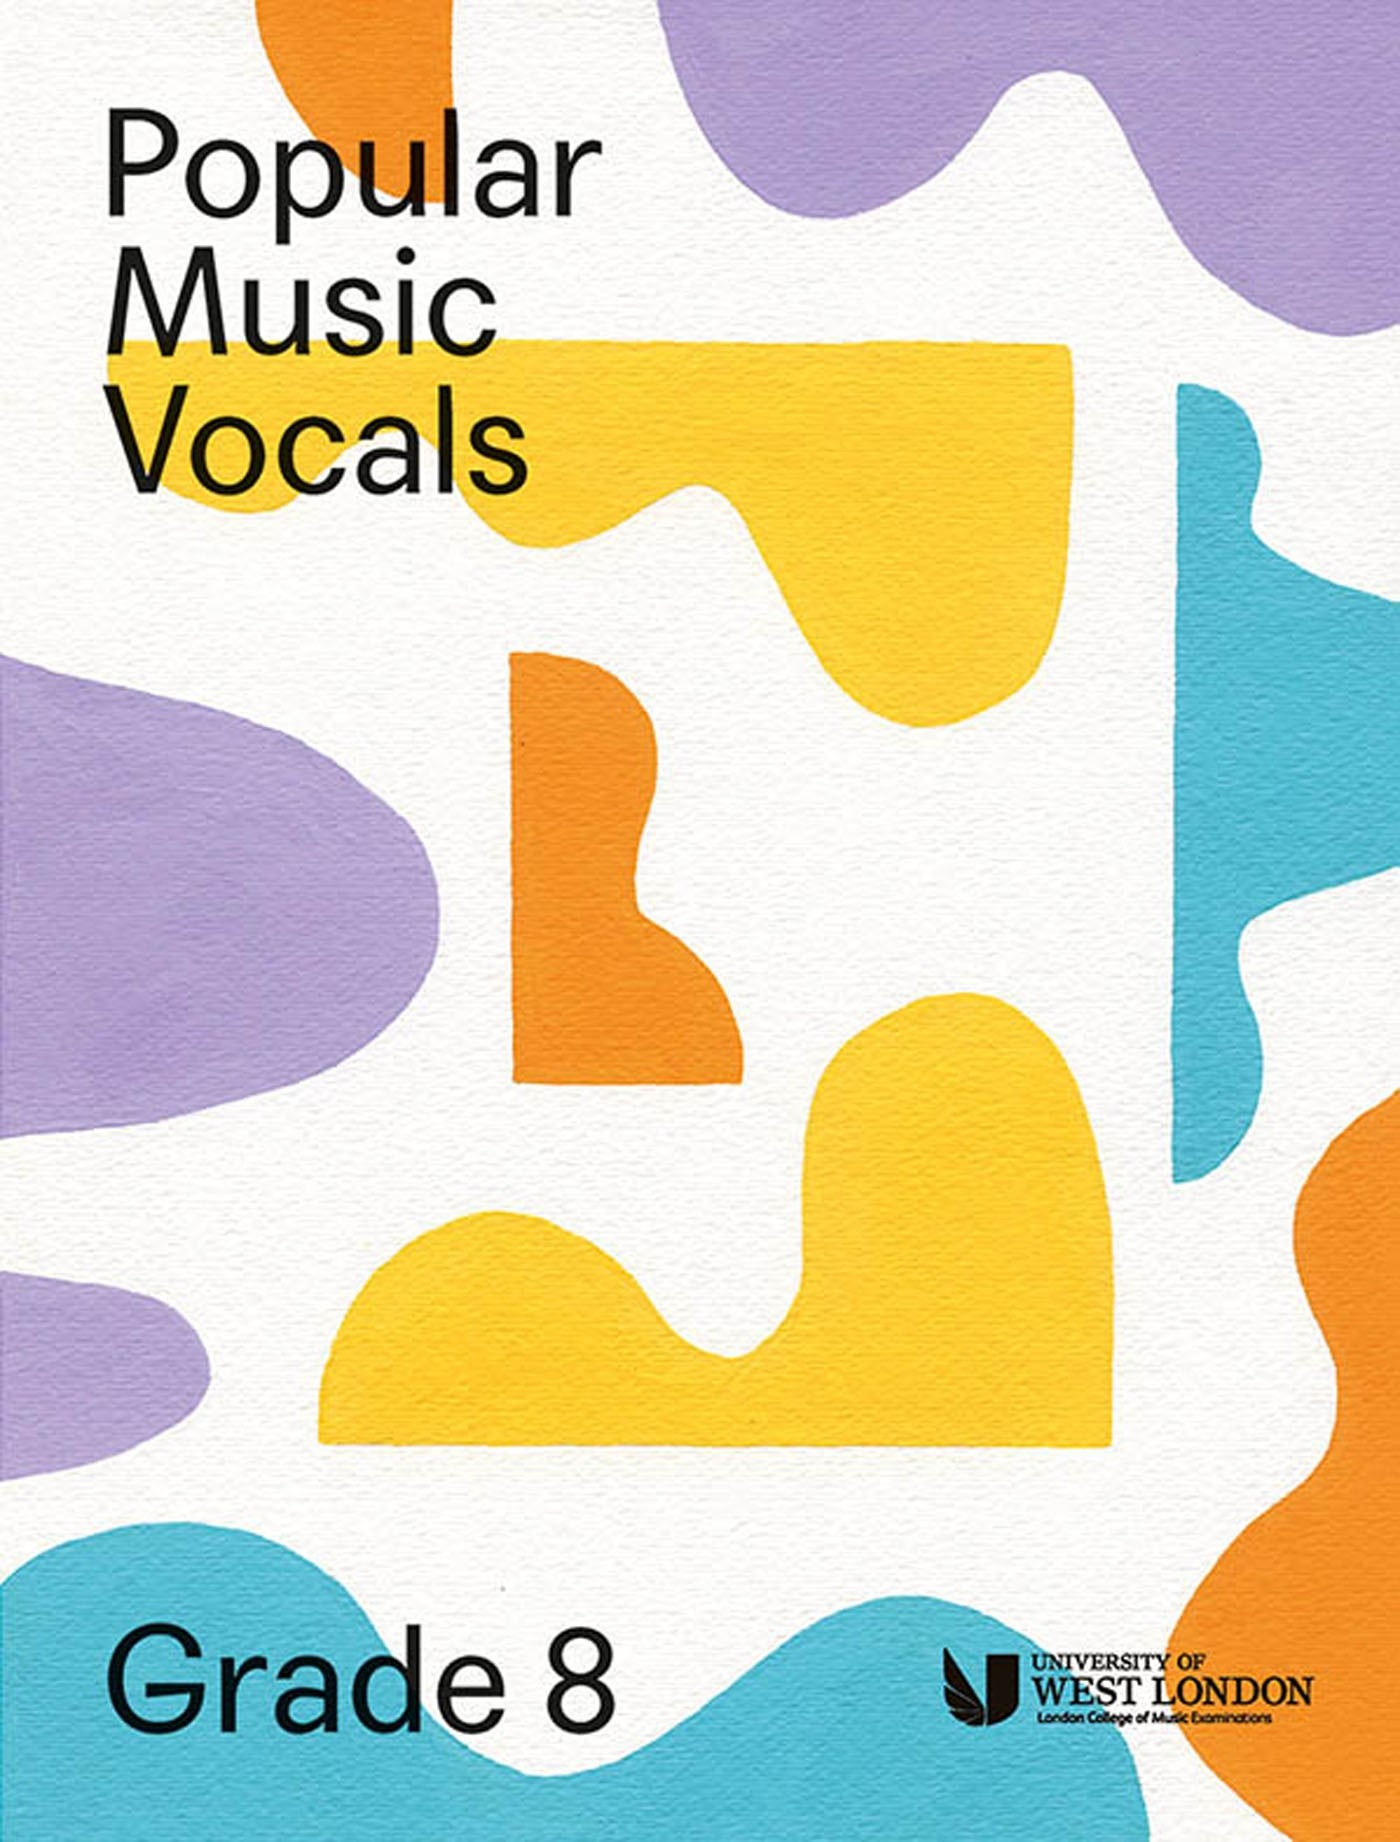 Popular Music Vocals Grade 8 Exams Book LCM UWL Pop Syllabus S141